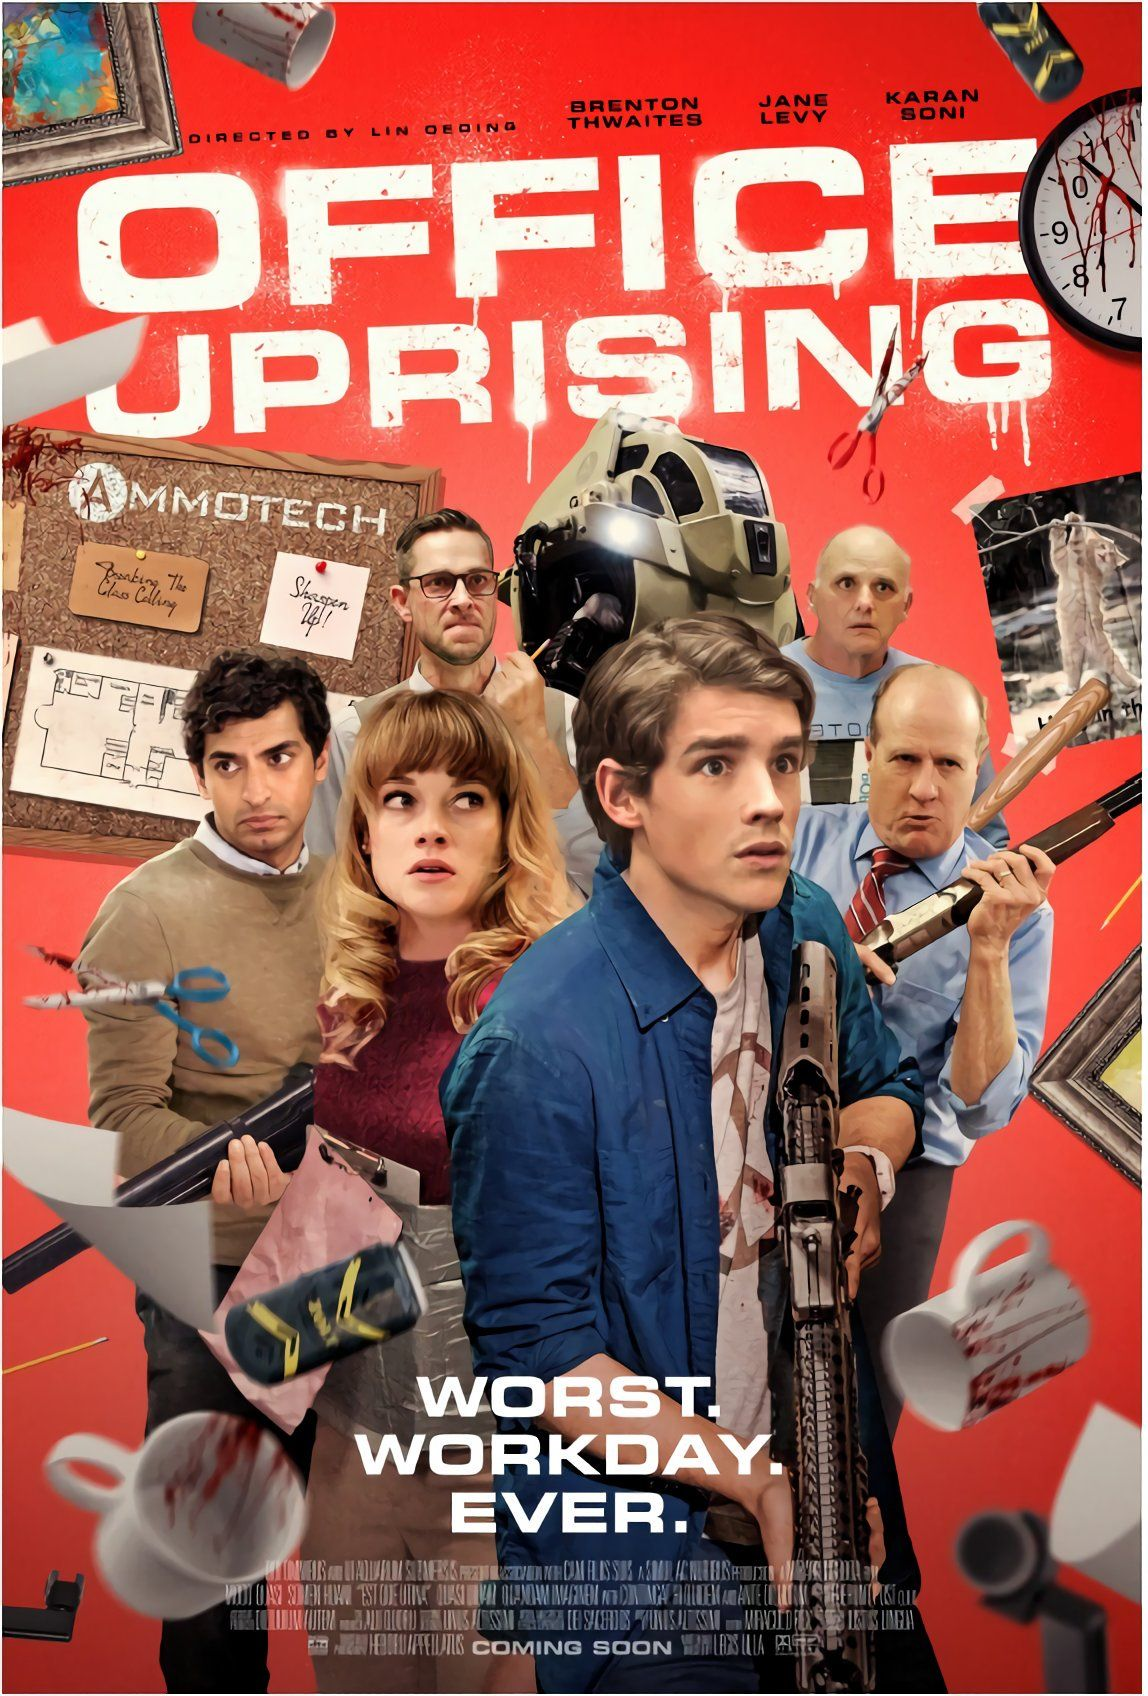 Office Uprising (2018, dir. Lin Oeding)